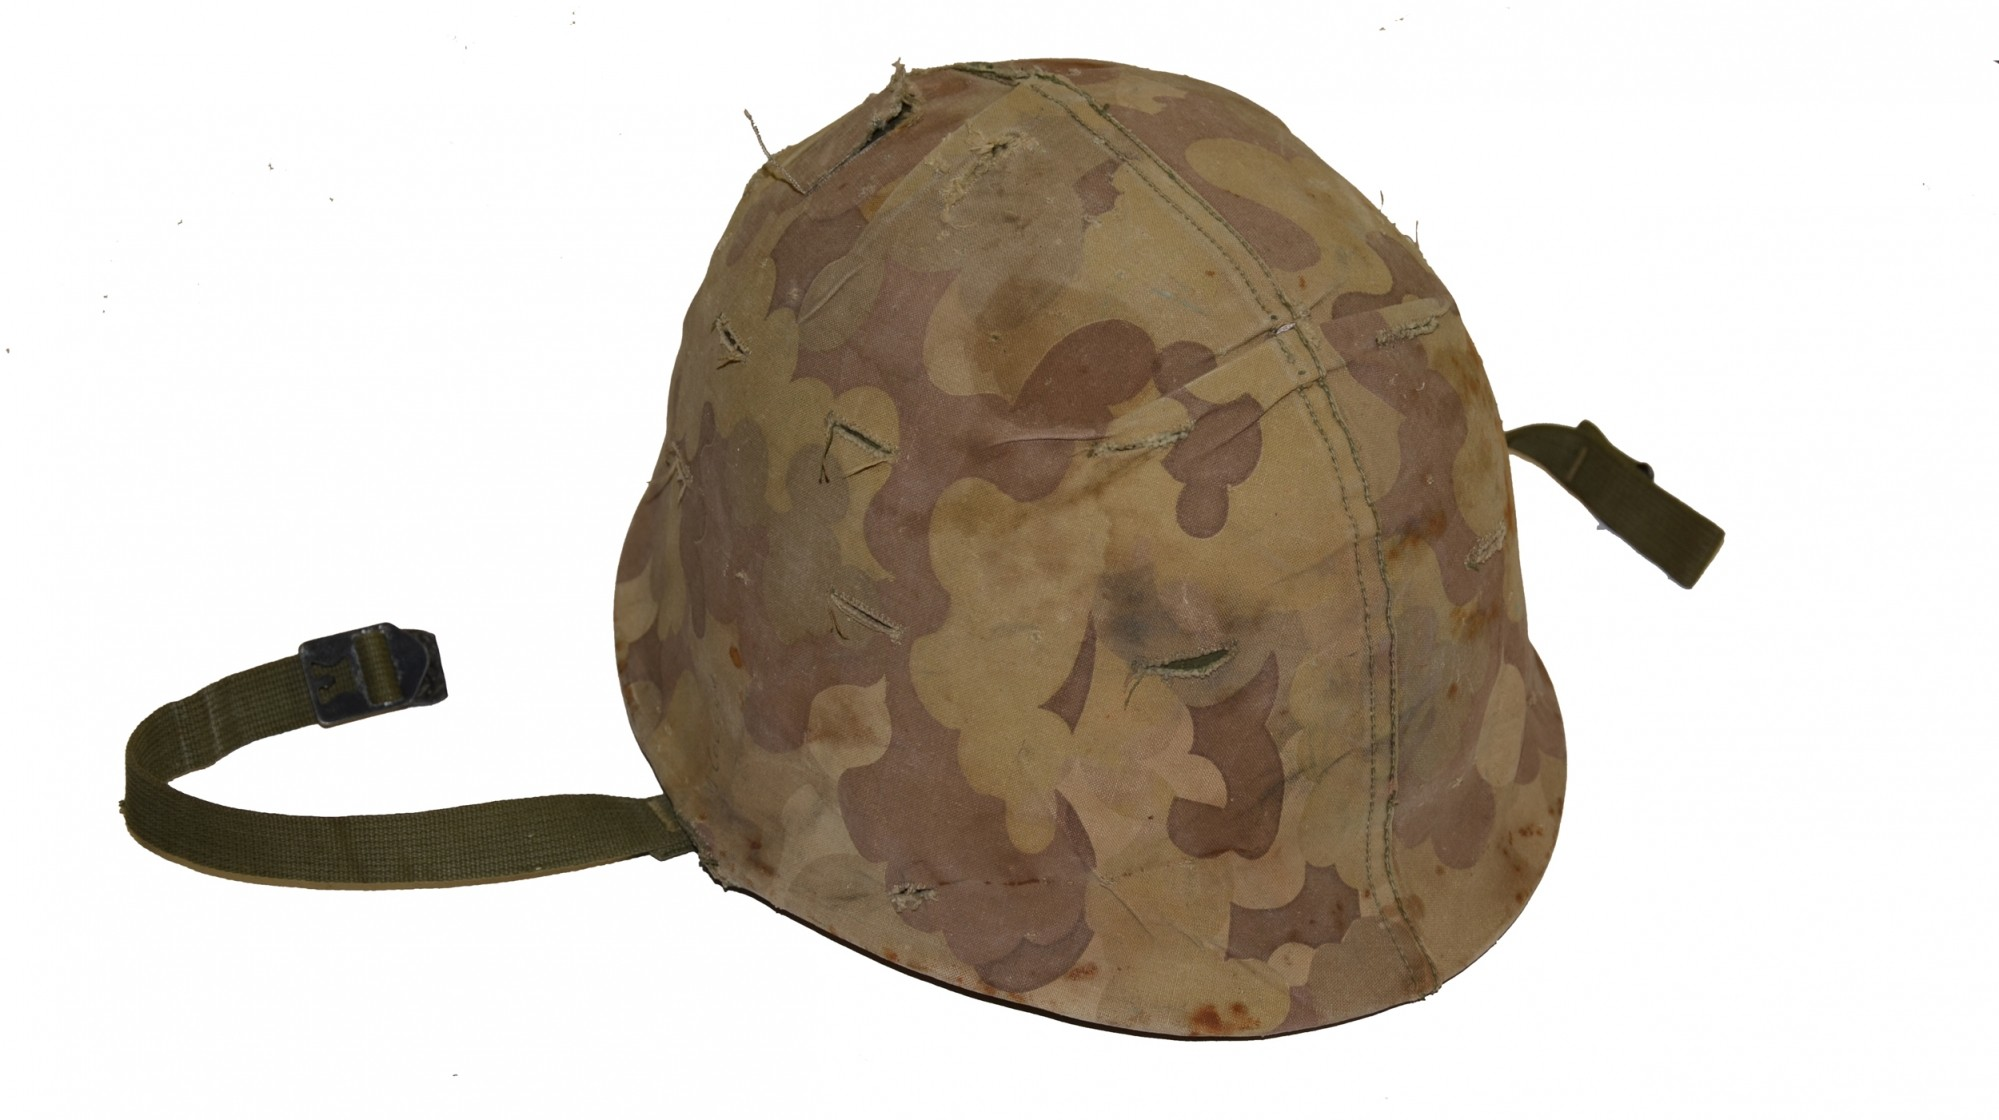 WORLD WAR TWO M1 HELMET WITH POST-WAR COVER & LINER